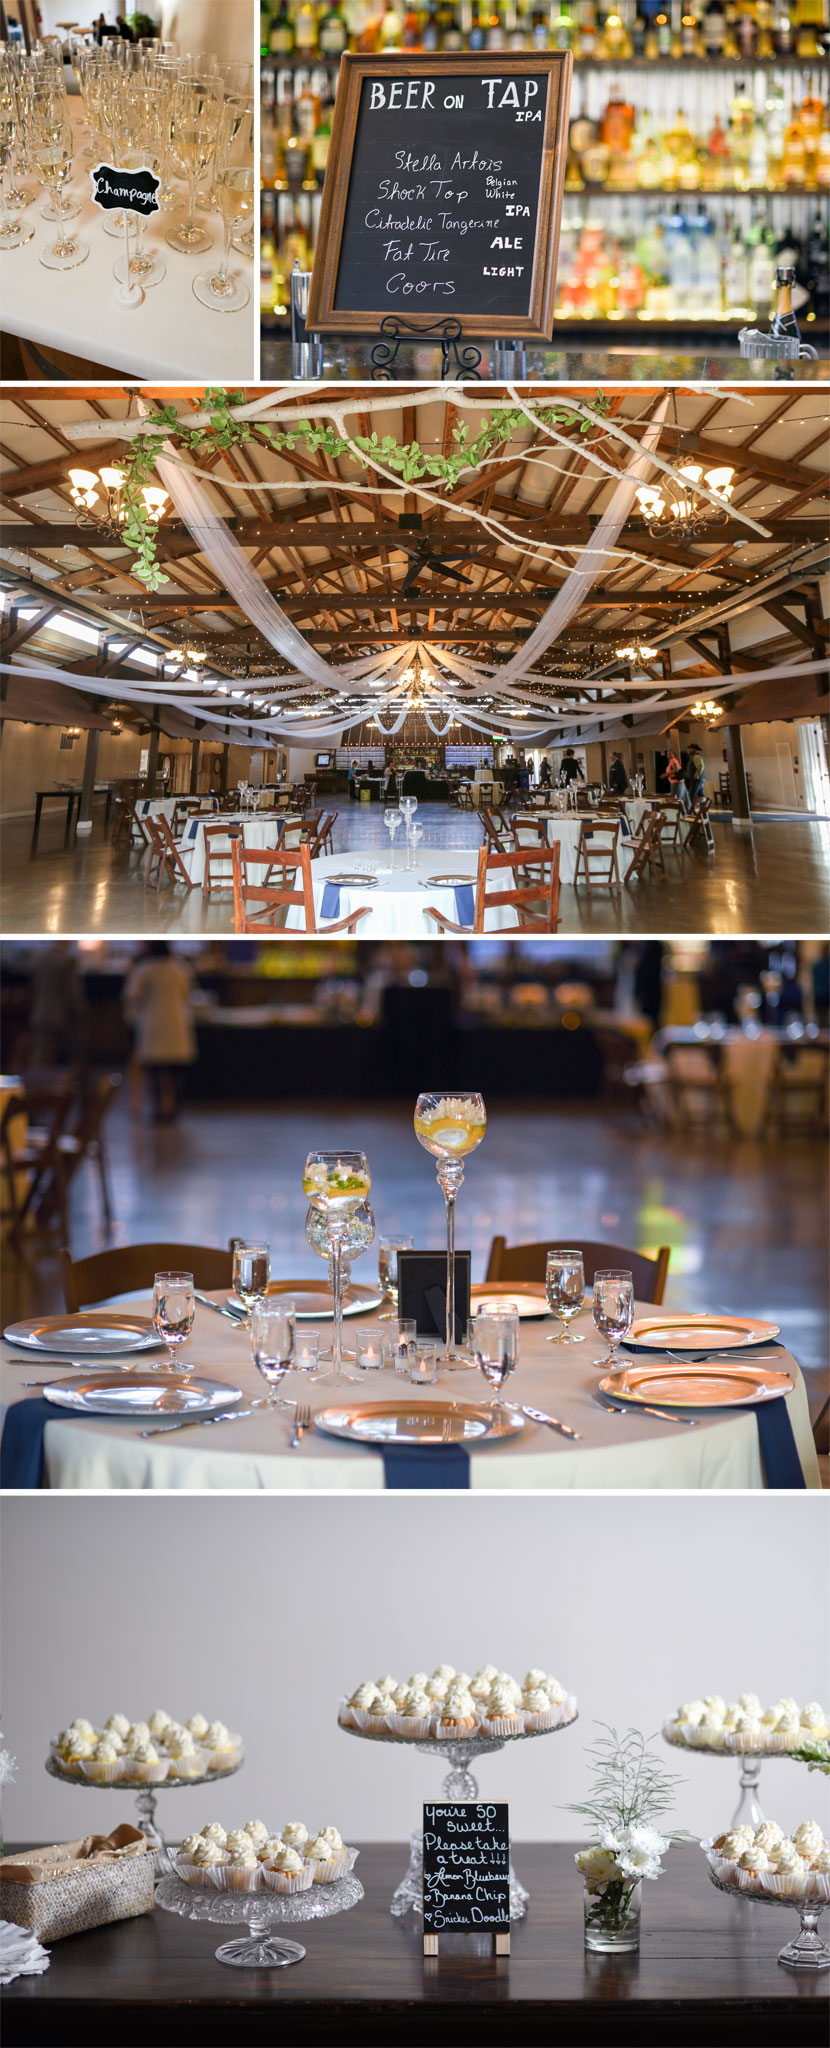 church-ranch-event-center-denver-wedding-lisa-charles-2016_02